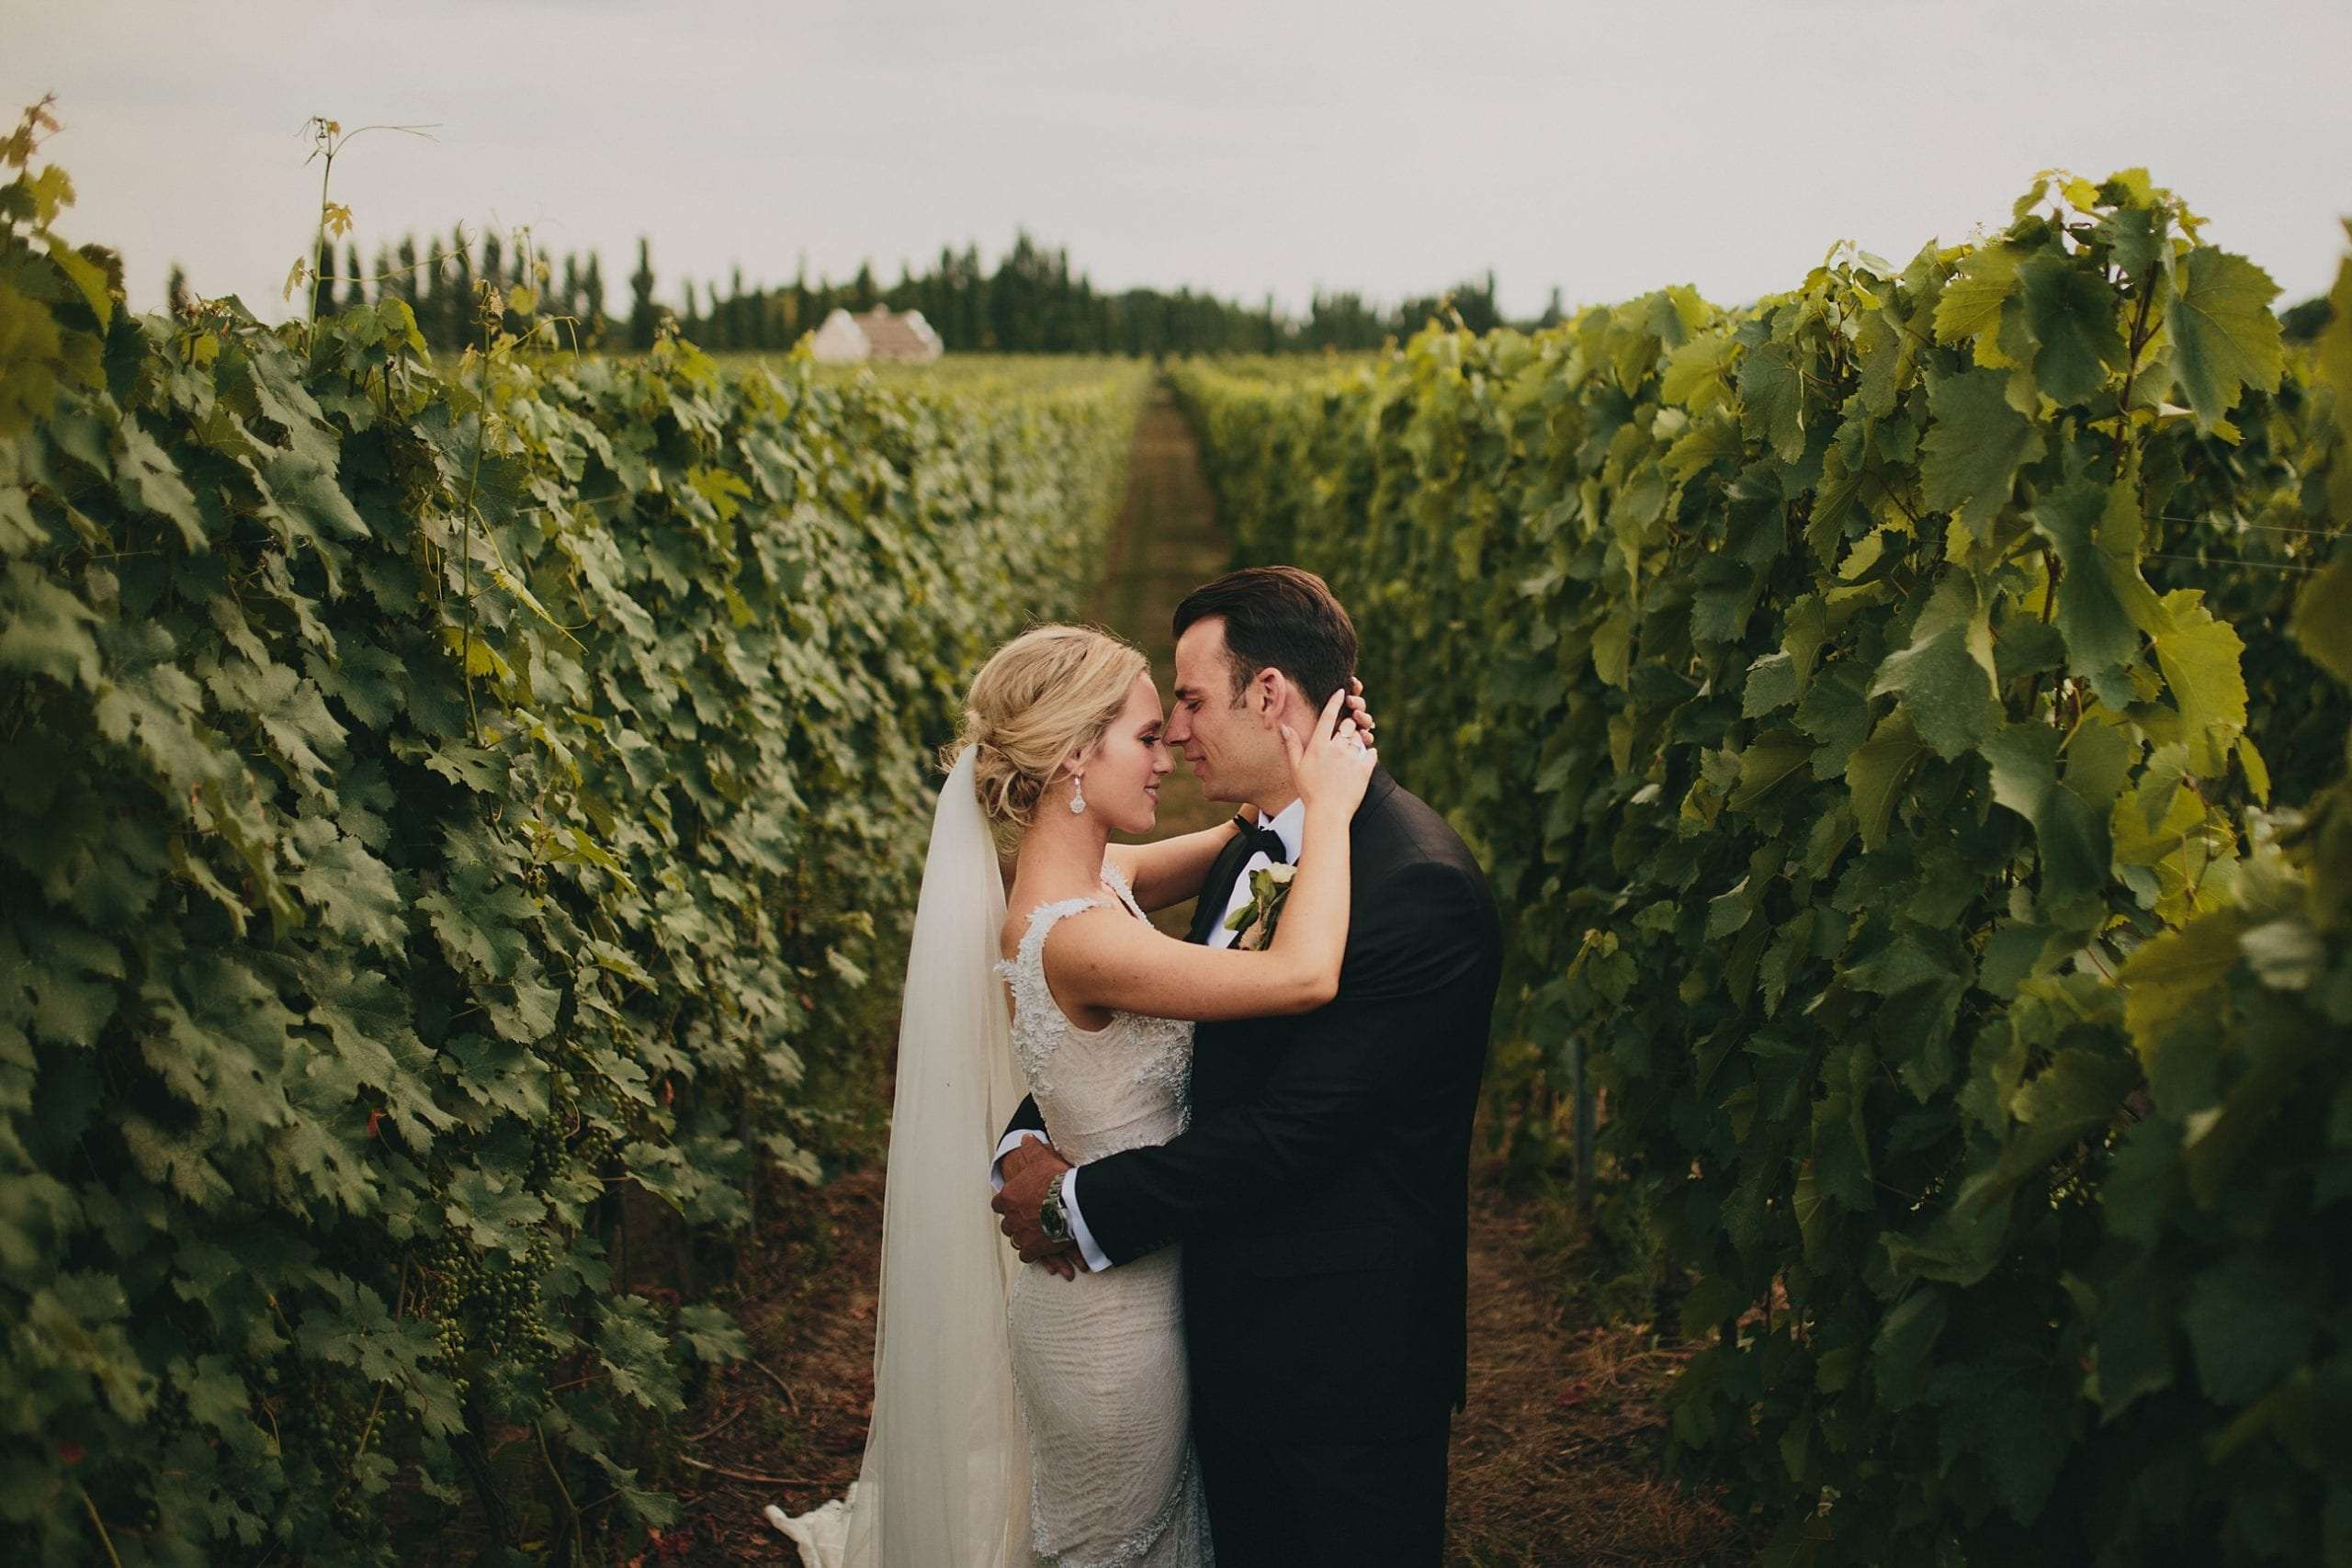 A newlywed couple hugging each other among vineyards in Tuscany